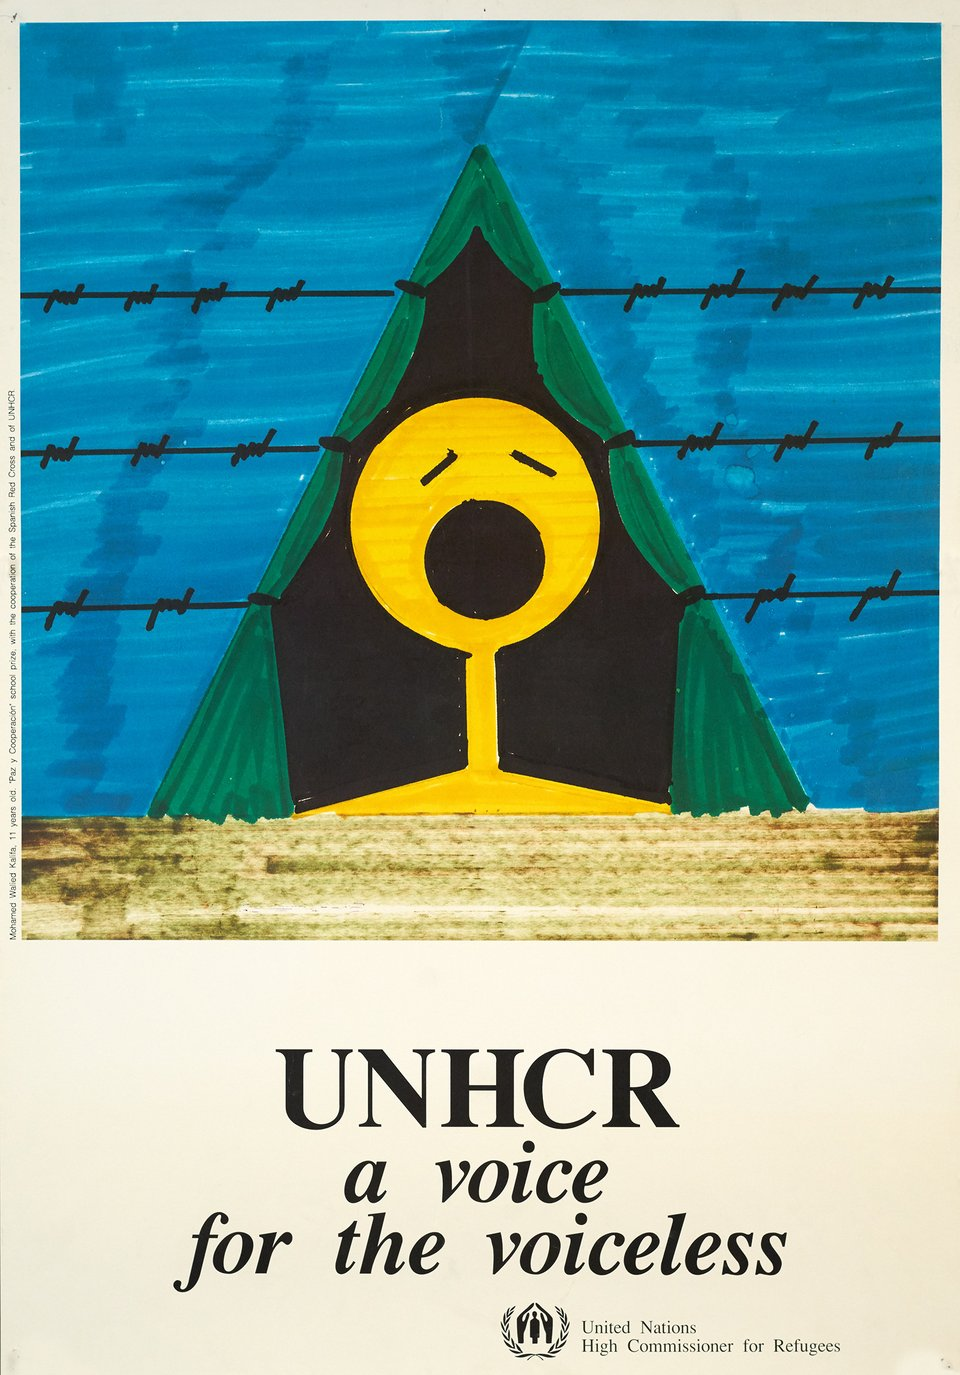 UNHCR, A voice for the voiceless – Affiche ancienne – Mohamed WALIED KALIFA – 1975